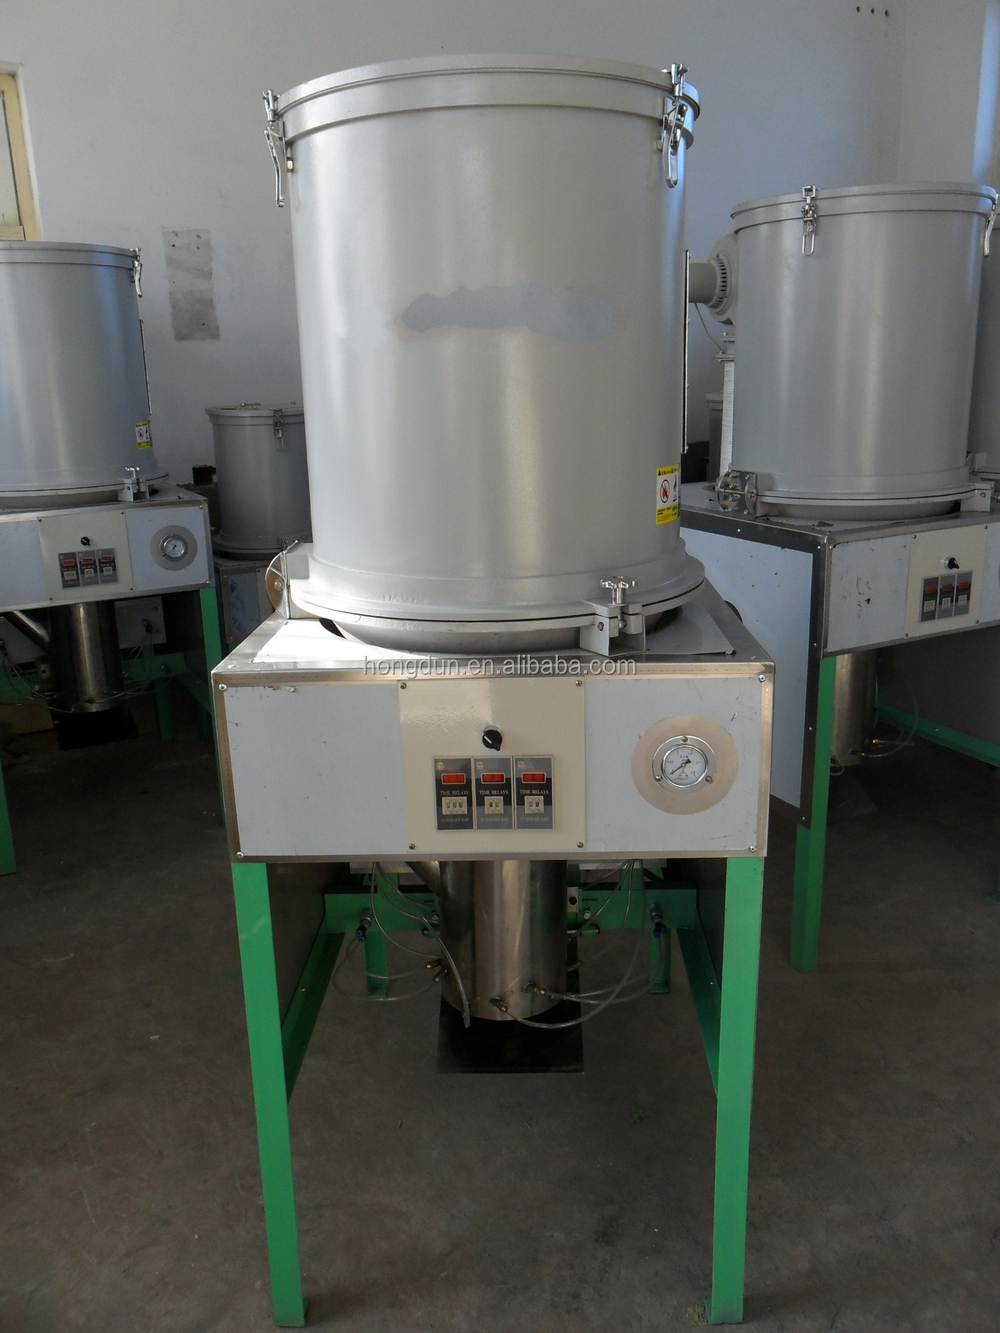 Dry Way Garlic Peeling Machines Production Line